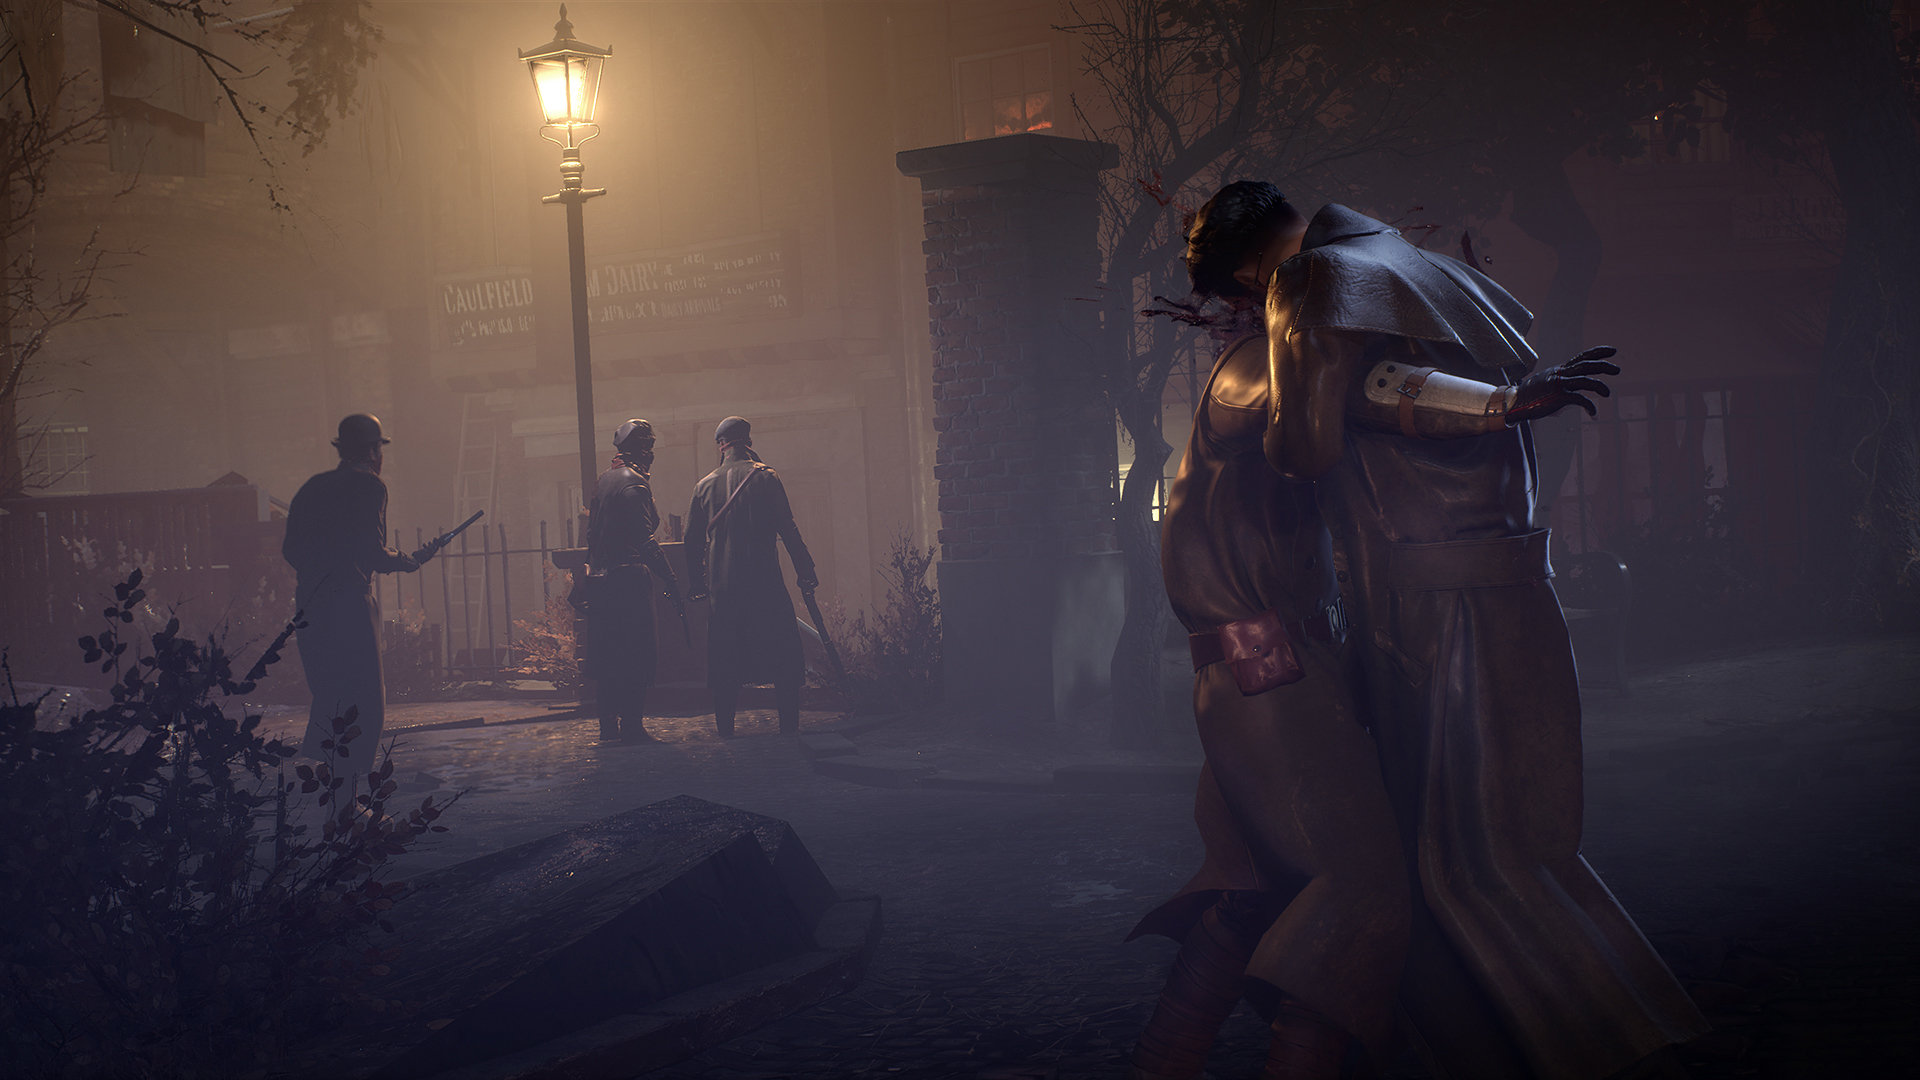 vampyr-screen-02-ps4-us-08mar18?$MediaCa